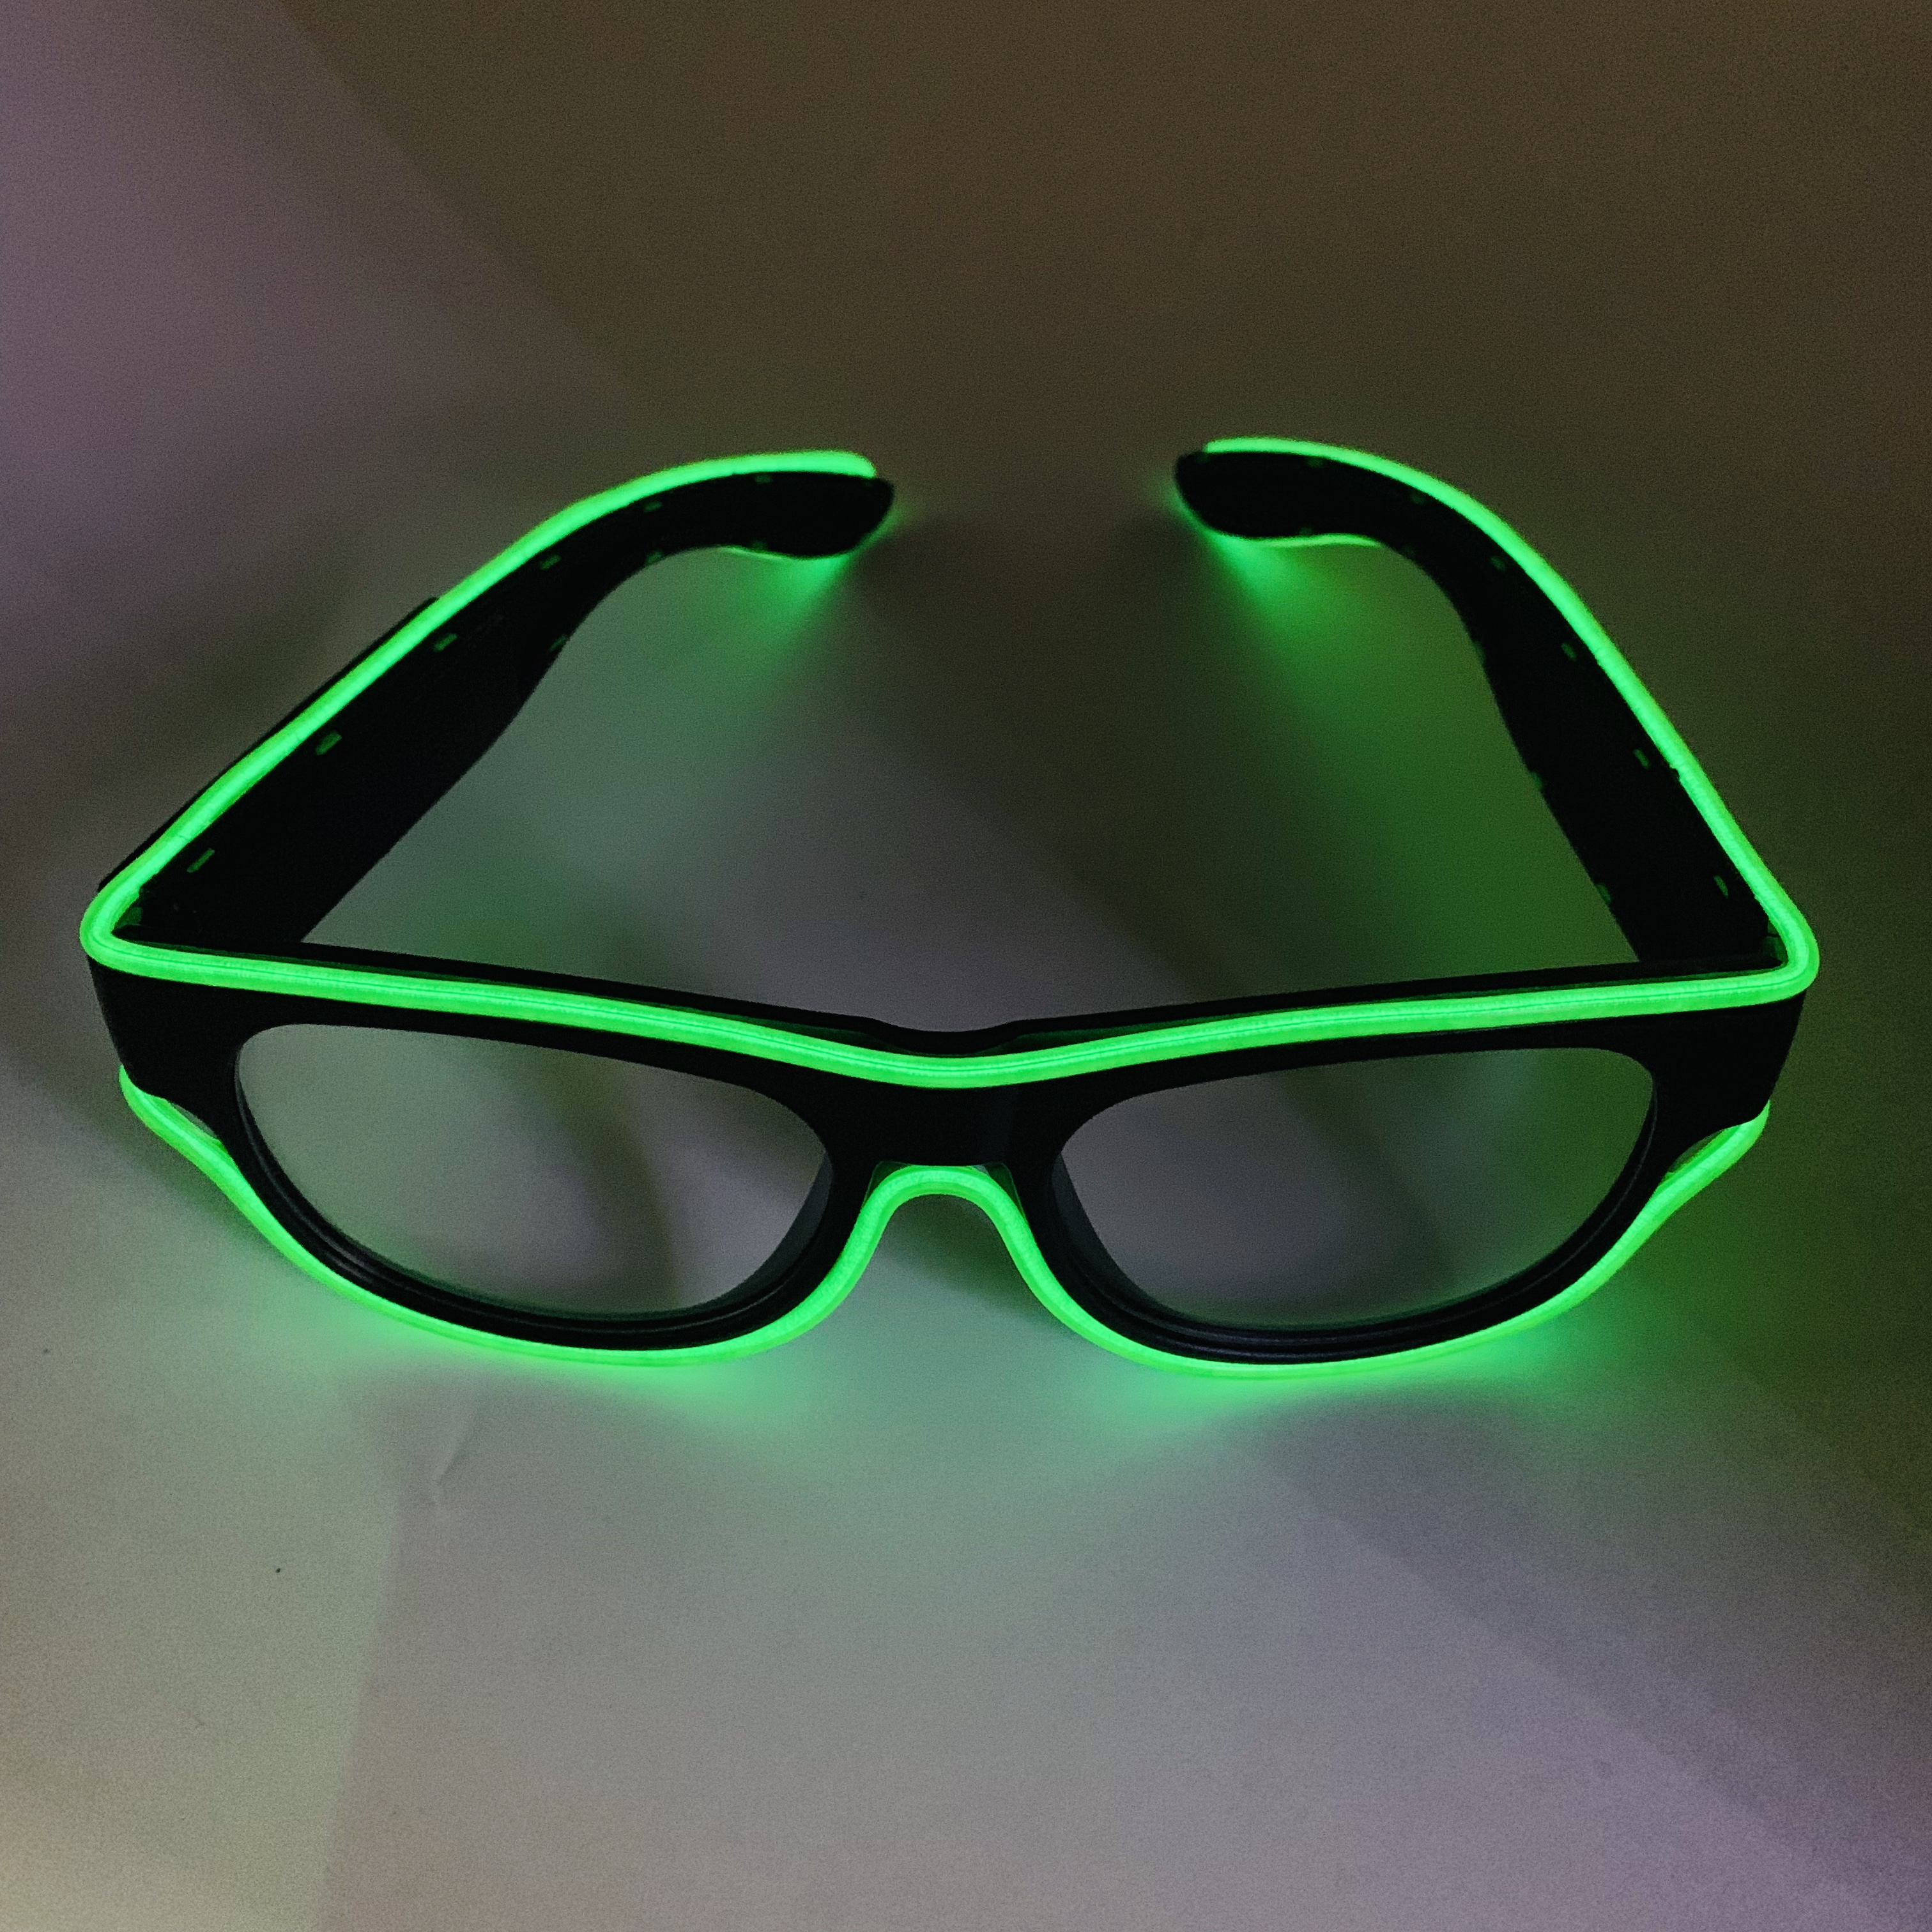 New products USB rechargeable function wireless neon glasses 2.3mm light up EL wire sunglasses